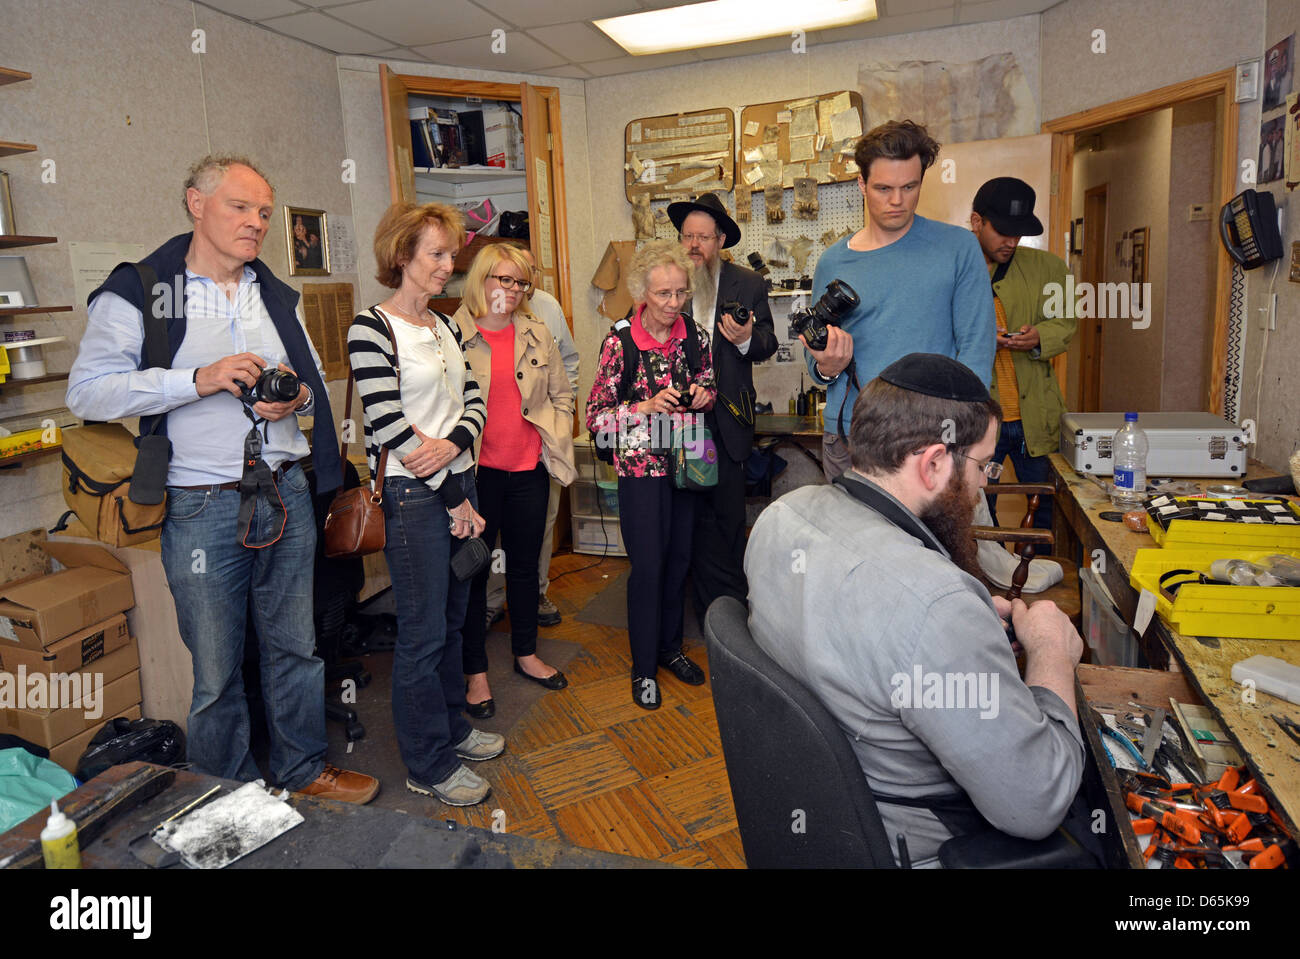 A tour group visits a place where teffilin (phylacteries) are made in Crown Heights, Brooklyn, New York - Stock Image